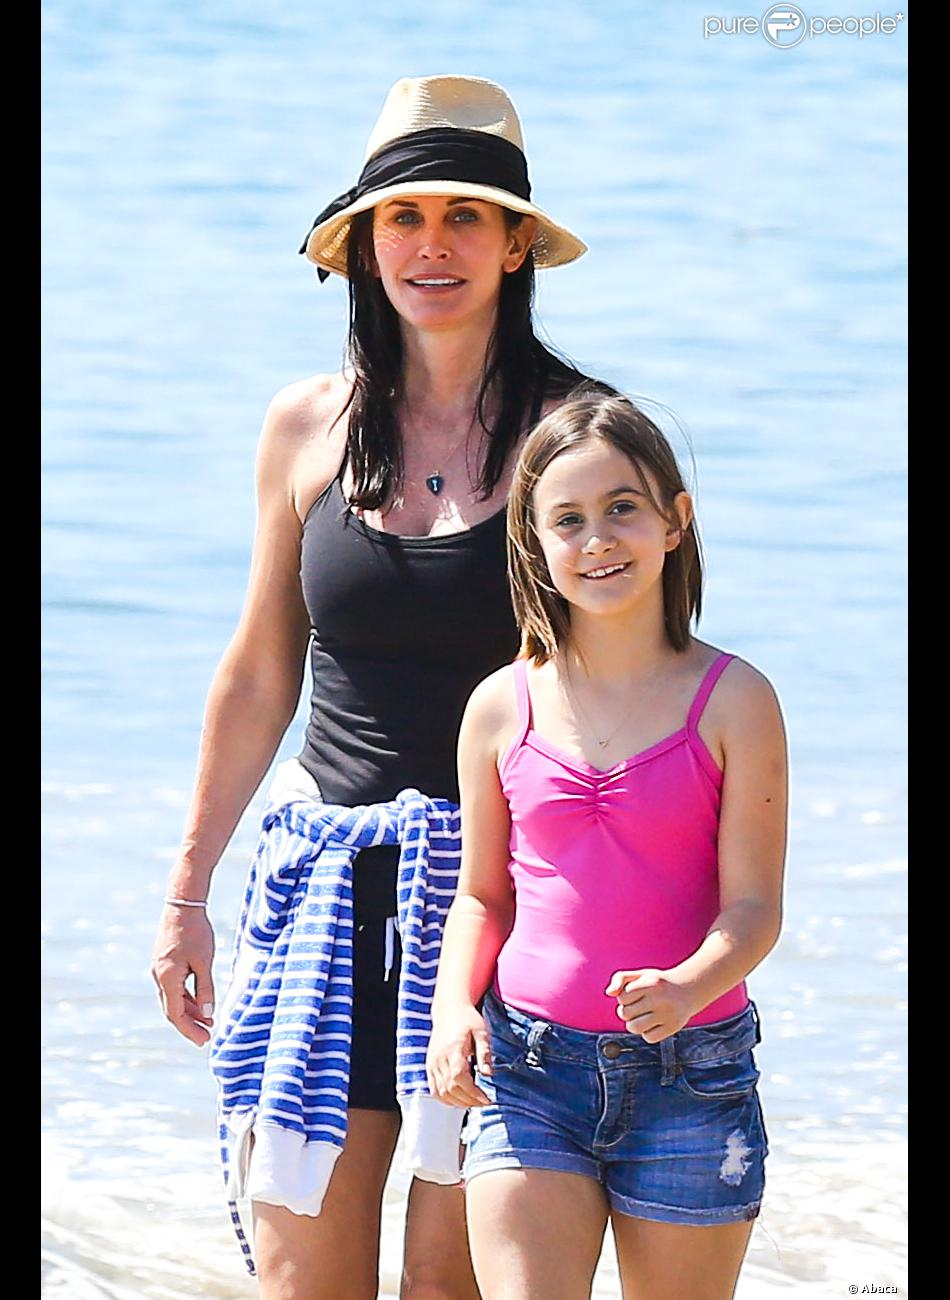 courteney cox au top presque 50 ans vir e girly avec sa craquante coco purepeople. Black Bedroom Furniture Sets. Home Design Ideas